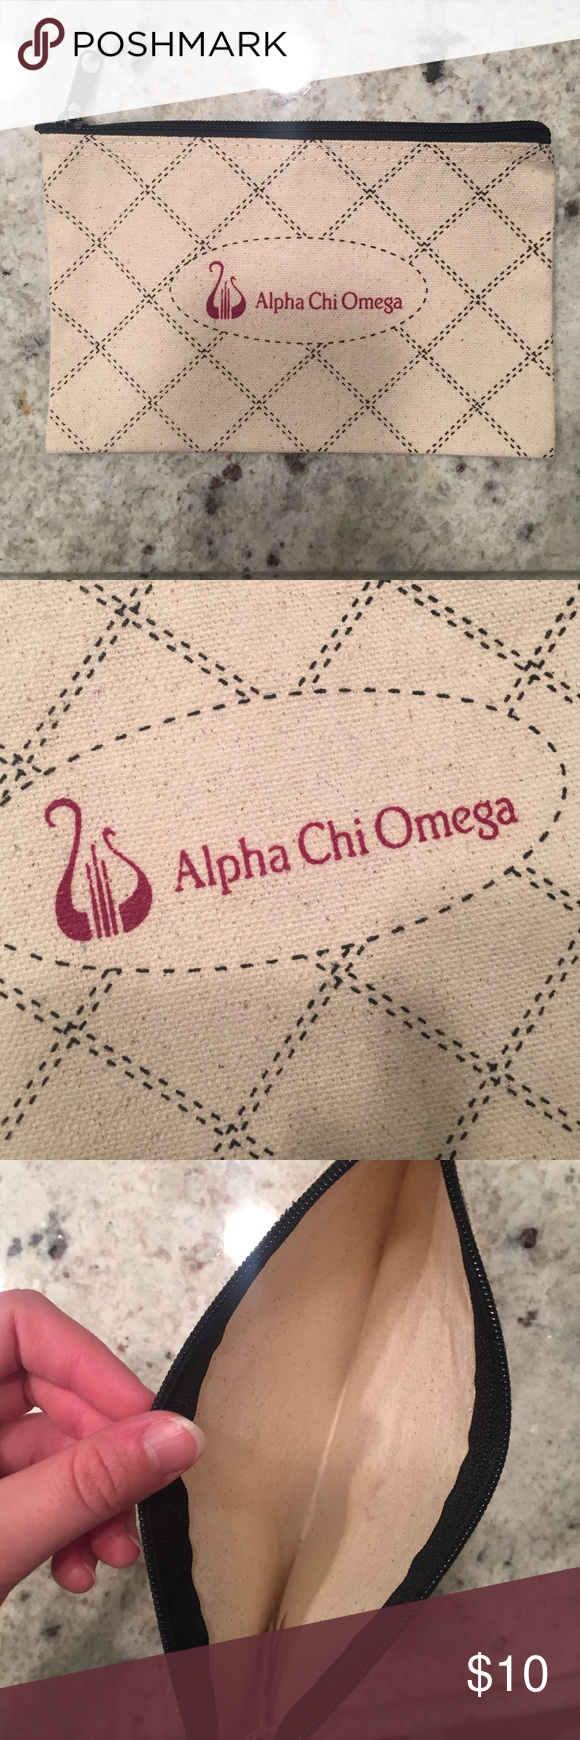 "Alpha Chi Omega zip pouch Cute Alpha Chi Omega zipperbag/pouch/makeup bag! Natural canvas/linen look outer with check print and a chi o logo in the center. Never used. Zip top. Unlined. About 8"" x 5"". Great for storing makeup, pencils, whatever you want! Bags Cosmetic Bags & Cases"